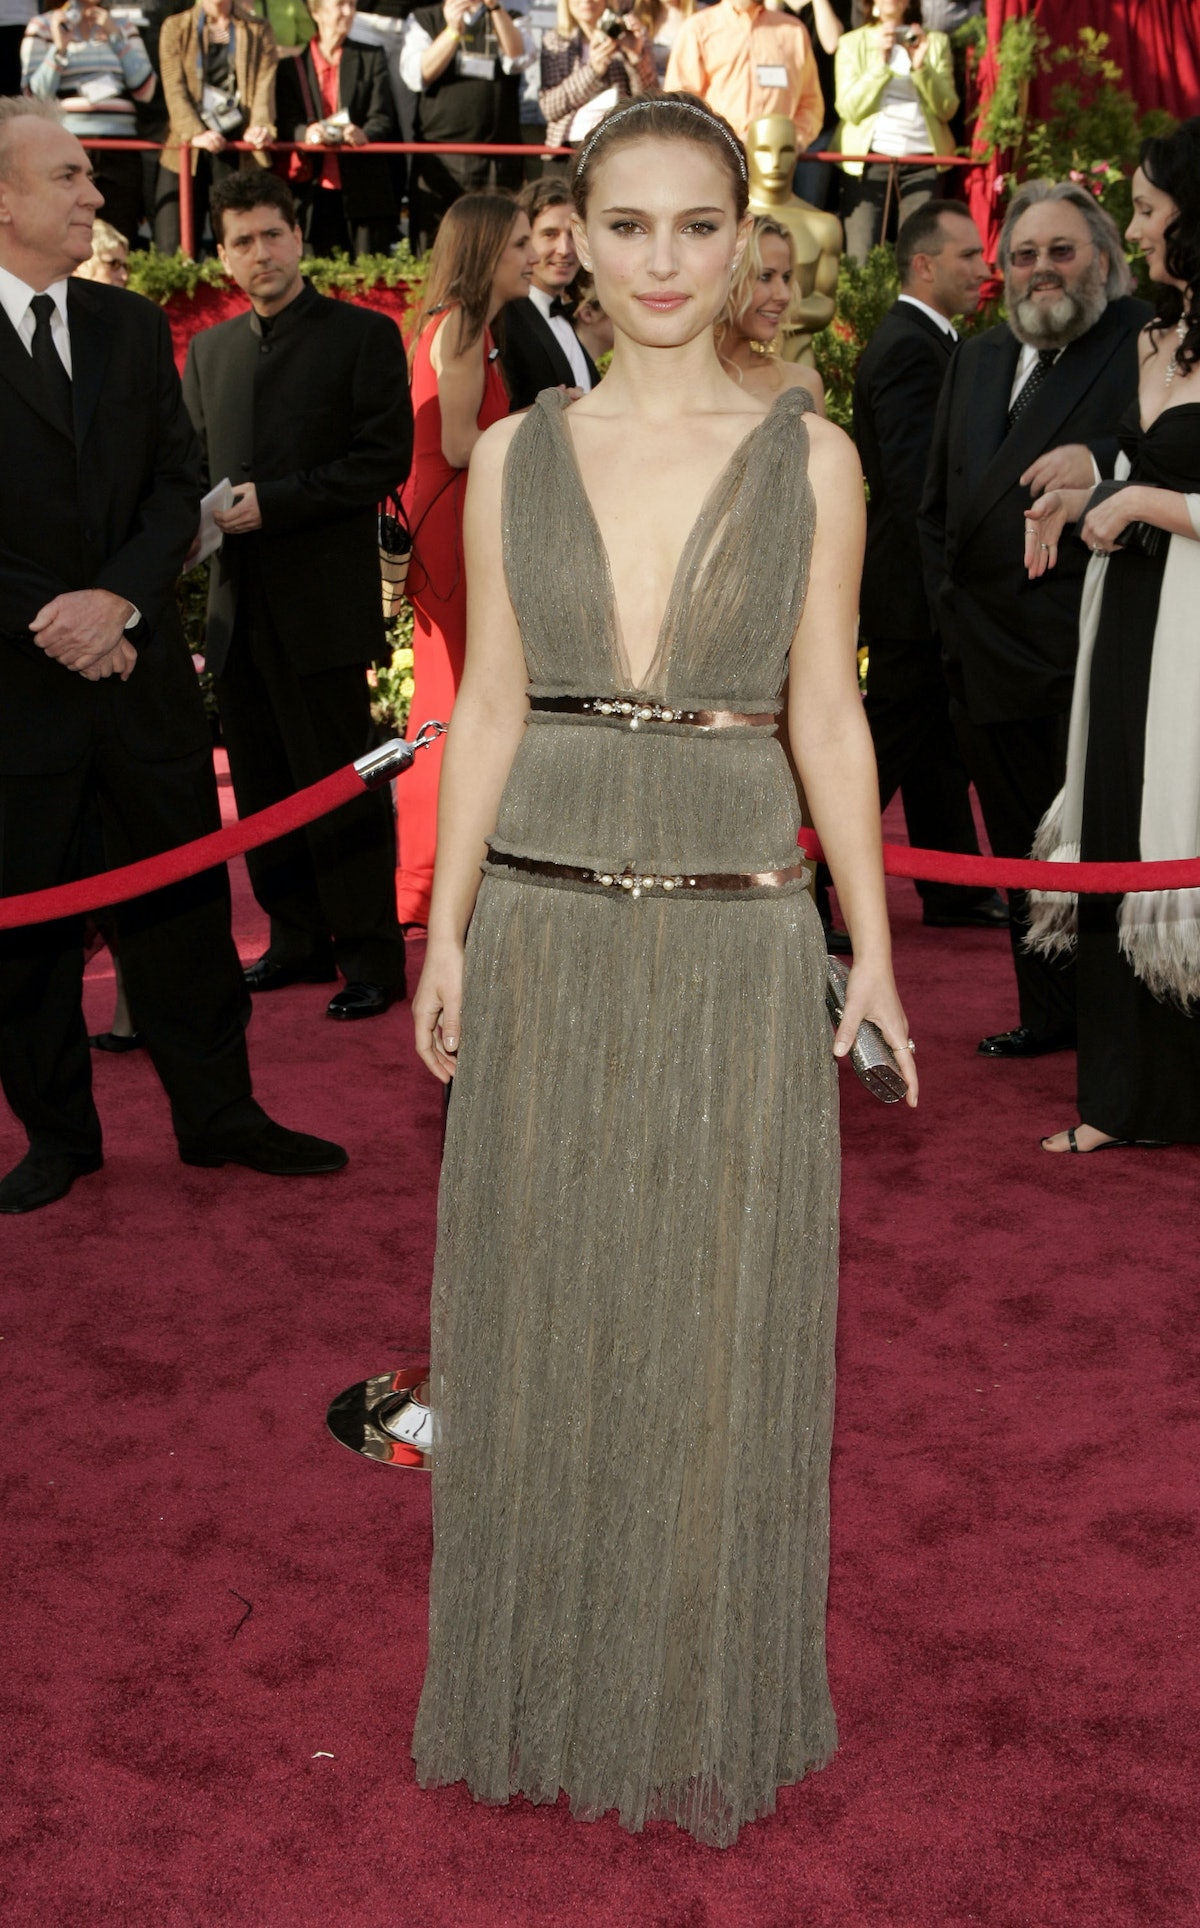 Natalie Portman at the Oscars in 2005.